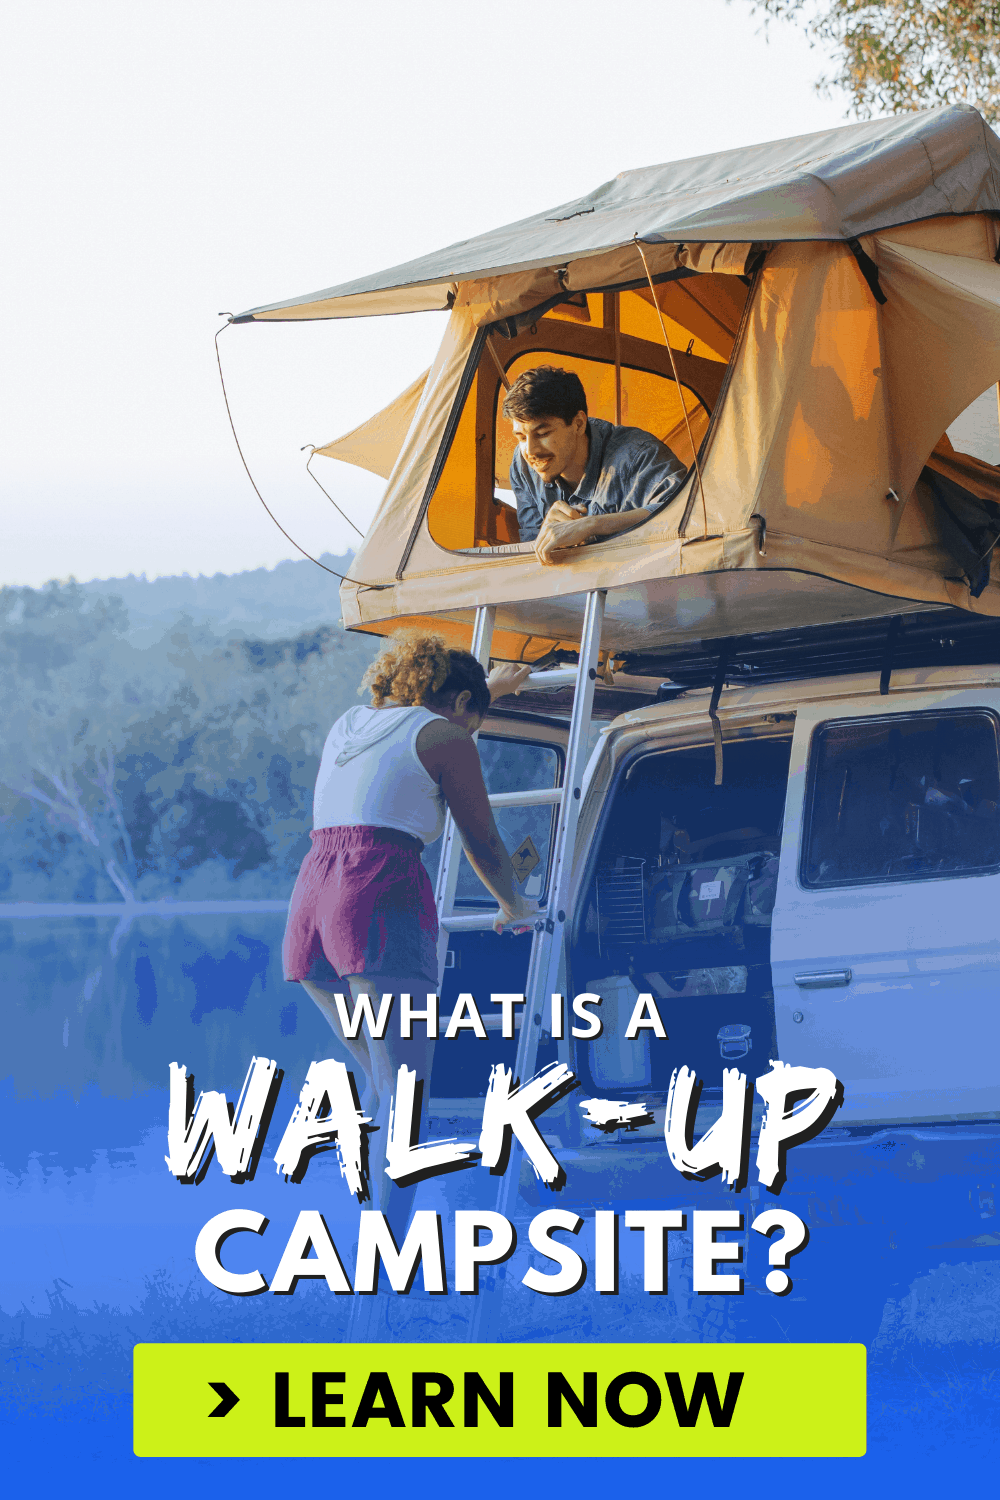 What is a Walk-up Campsite?